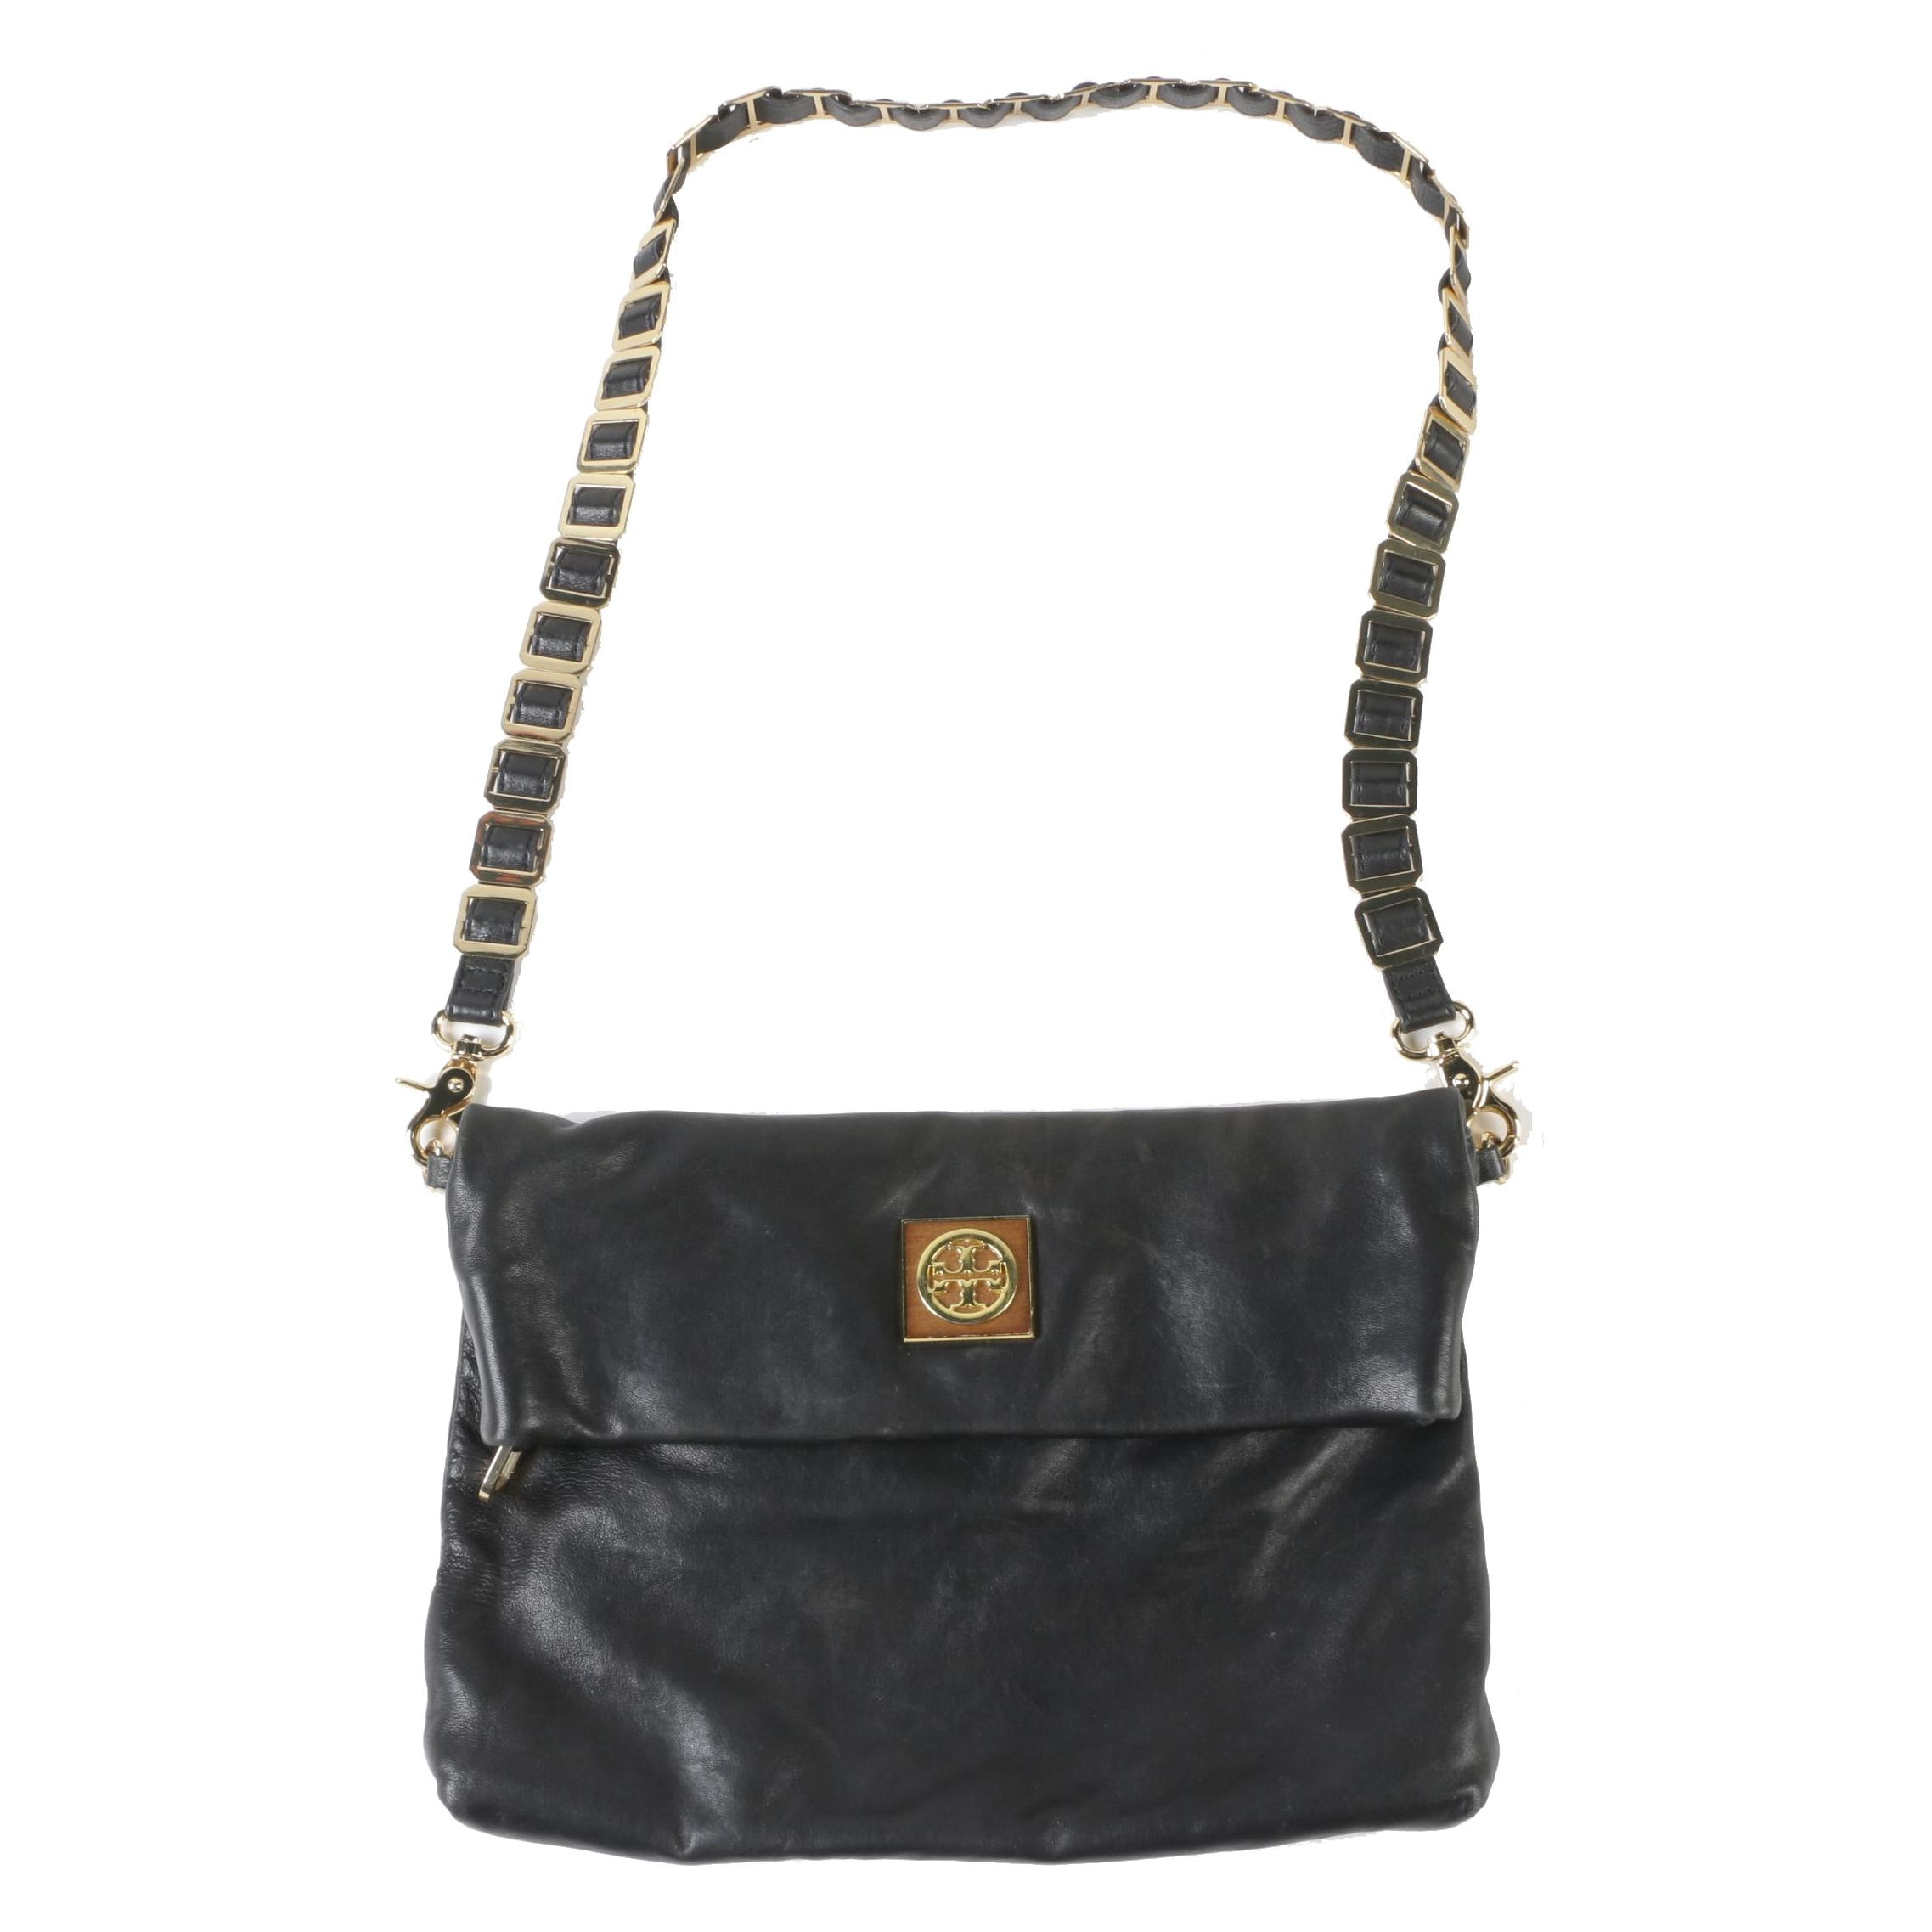 Tory Burch Black Leather Foldover Hobo Bag